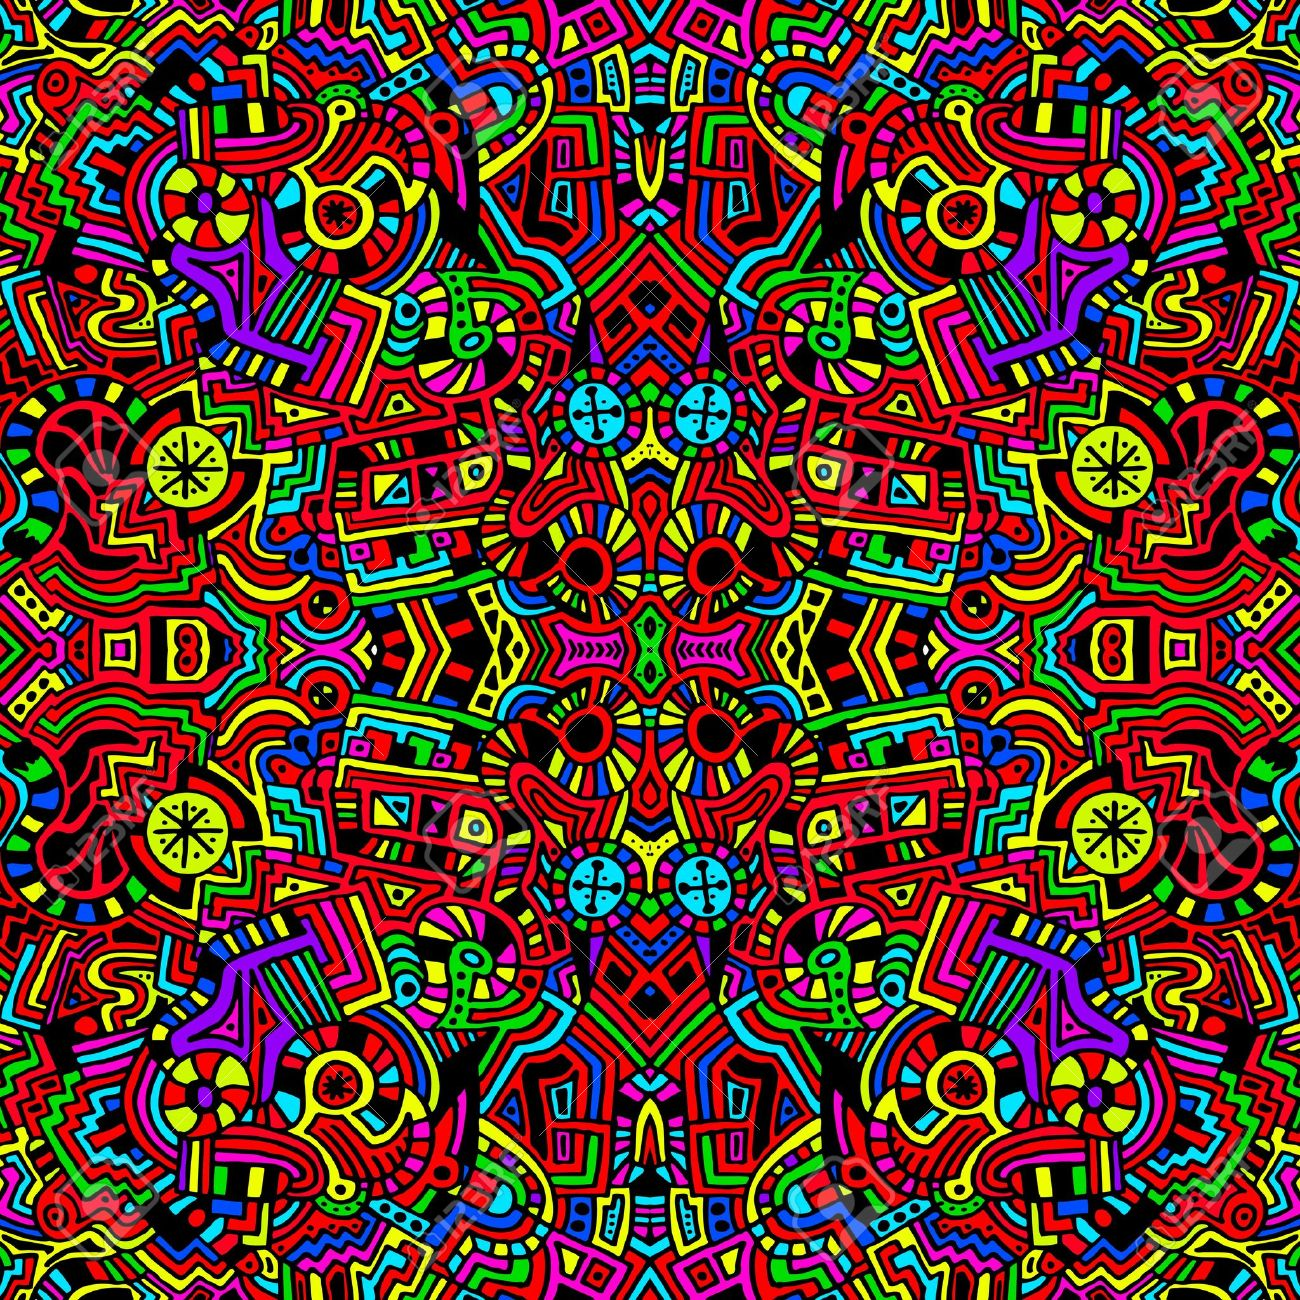 A Unique Seamless Very Colorful And Bright Abstract Modern